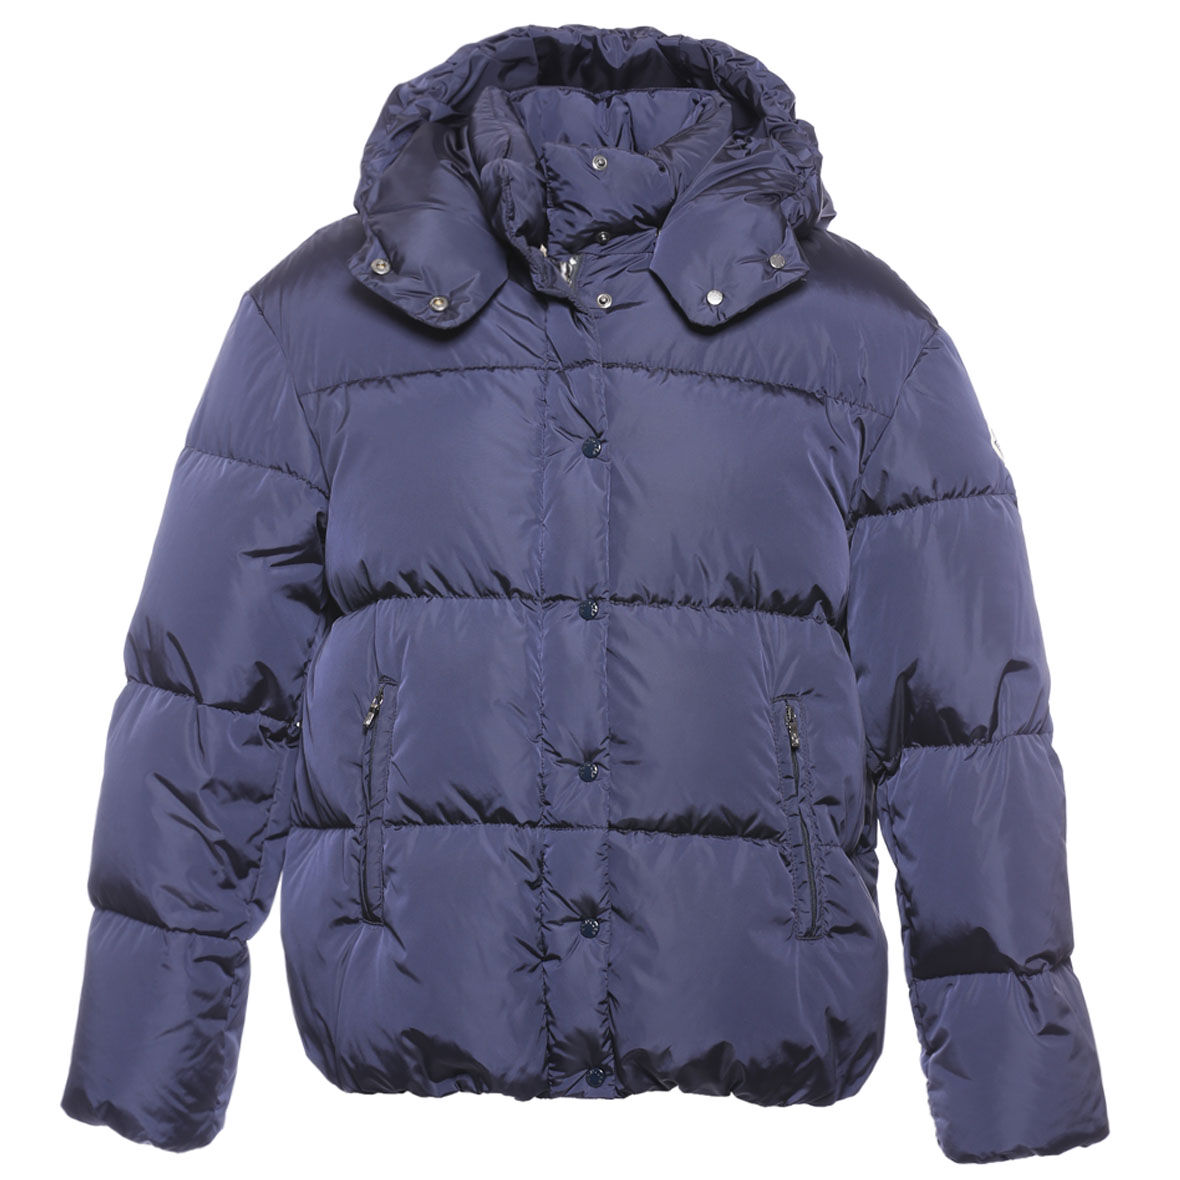 moncler sporting life sporting life rh sportinglife ca